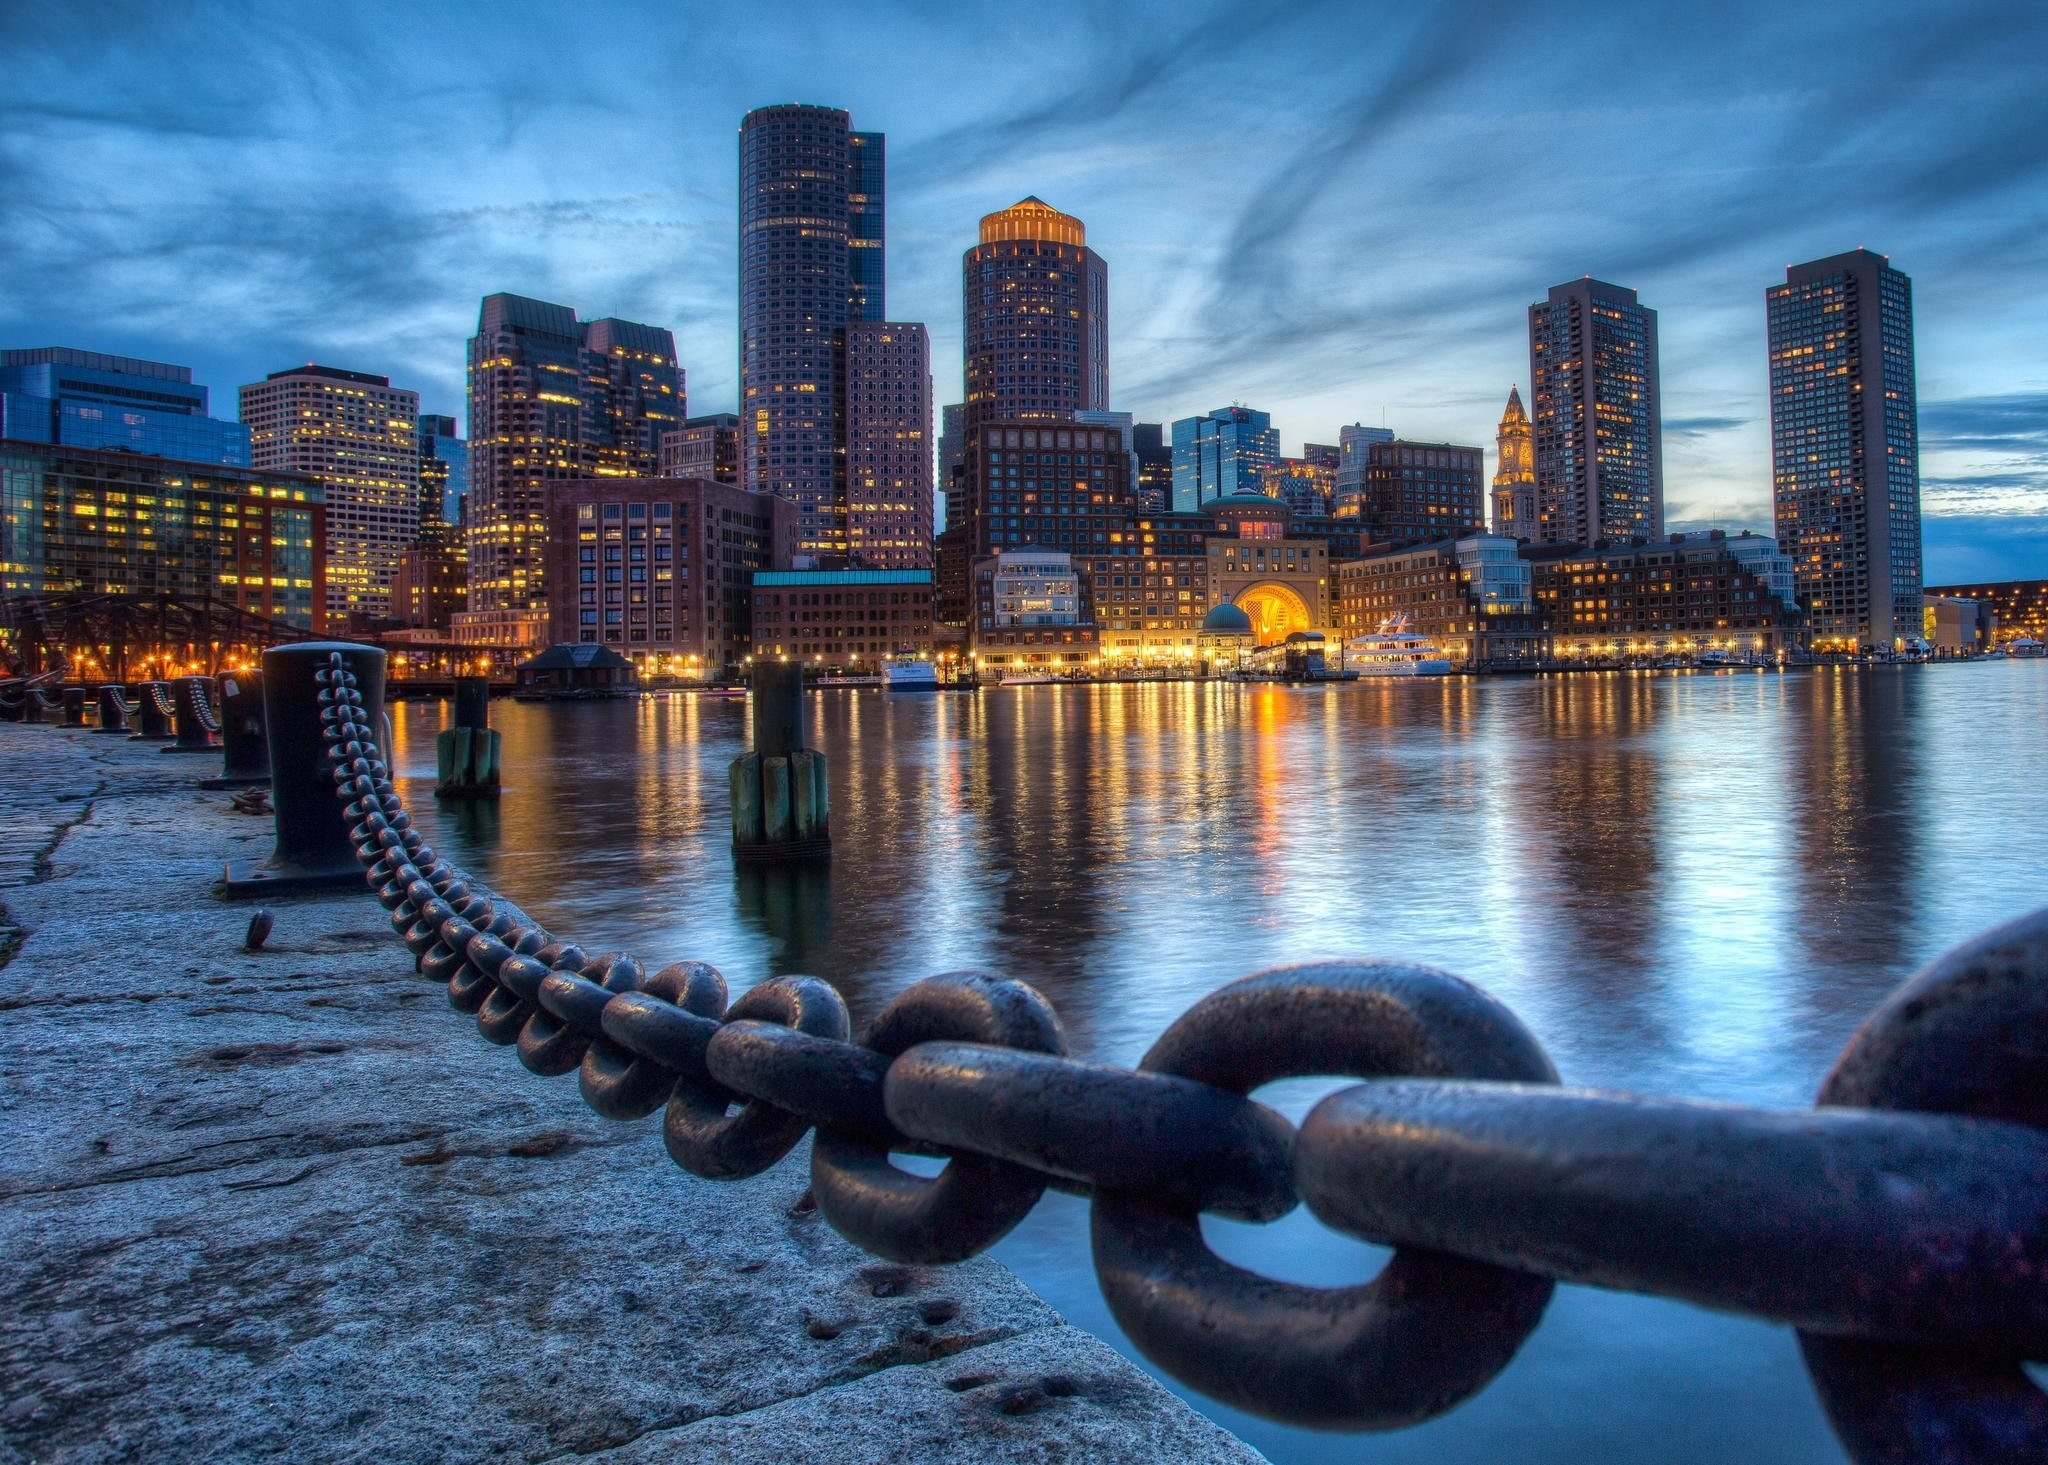 2048x1465 wallpaper boston wallpapers 2 -#main